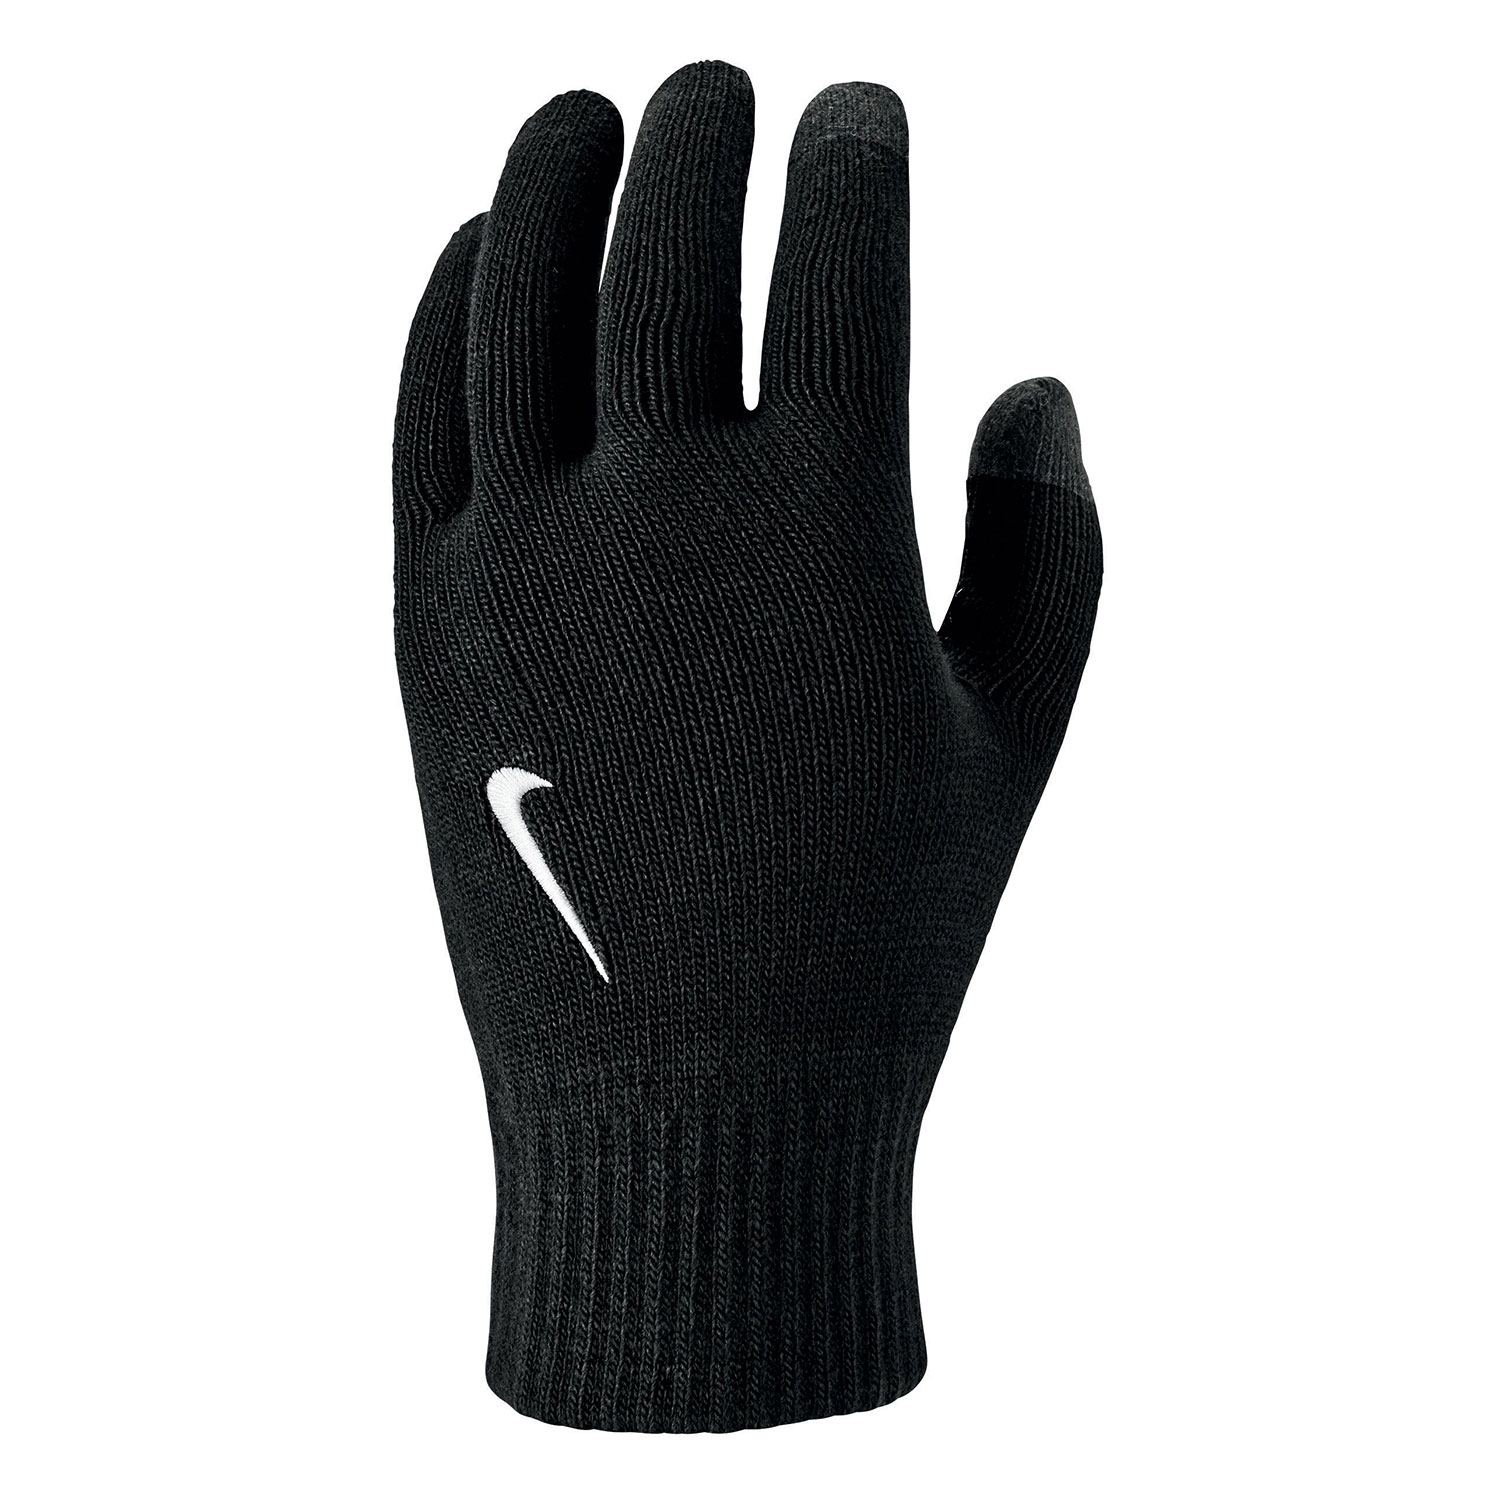 Nike Knitted Tech And Grip Guanti - Black